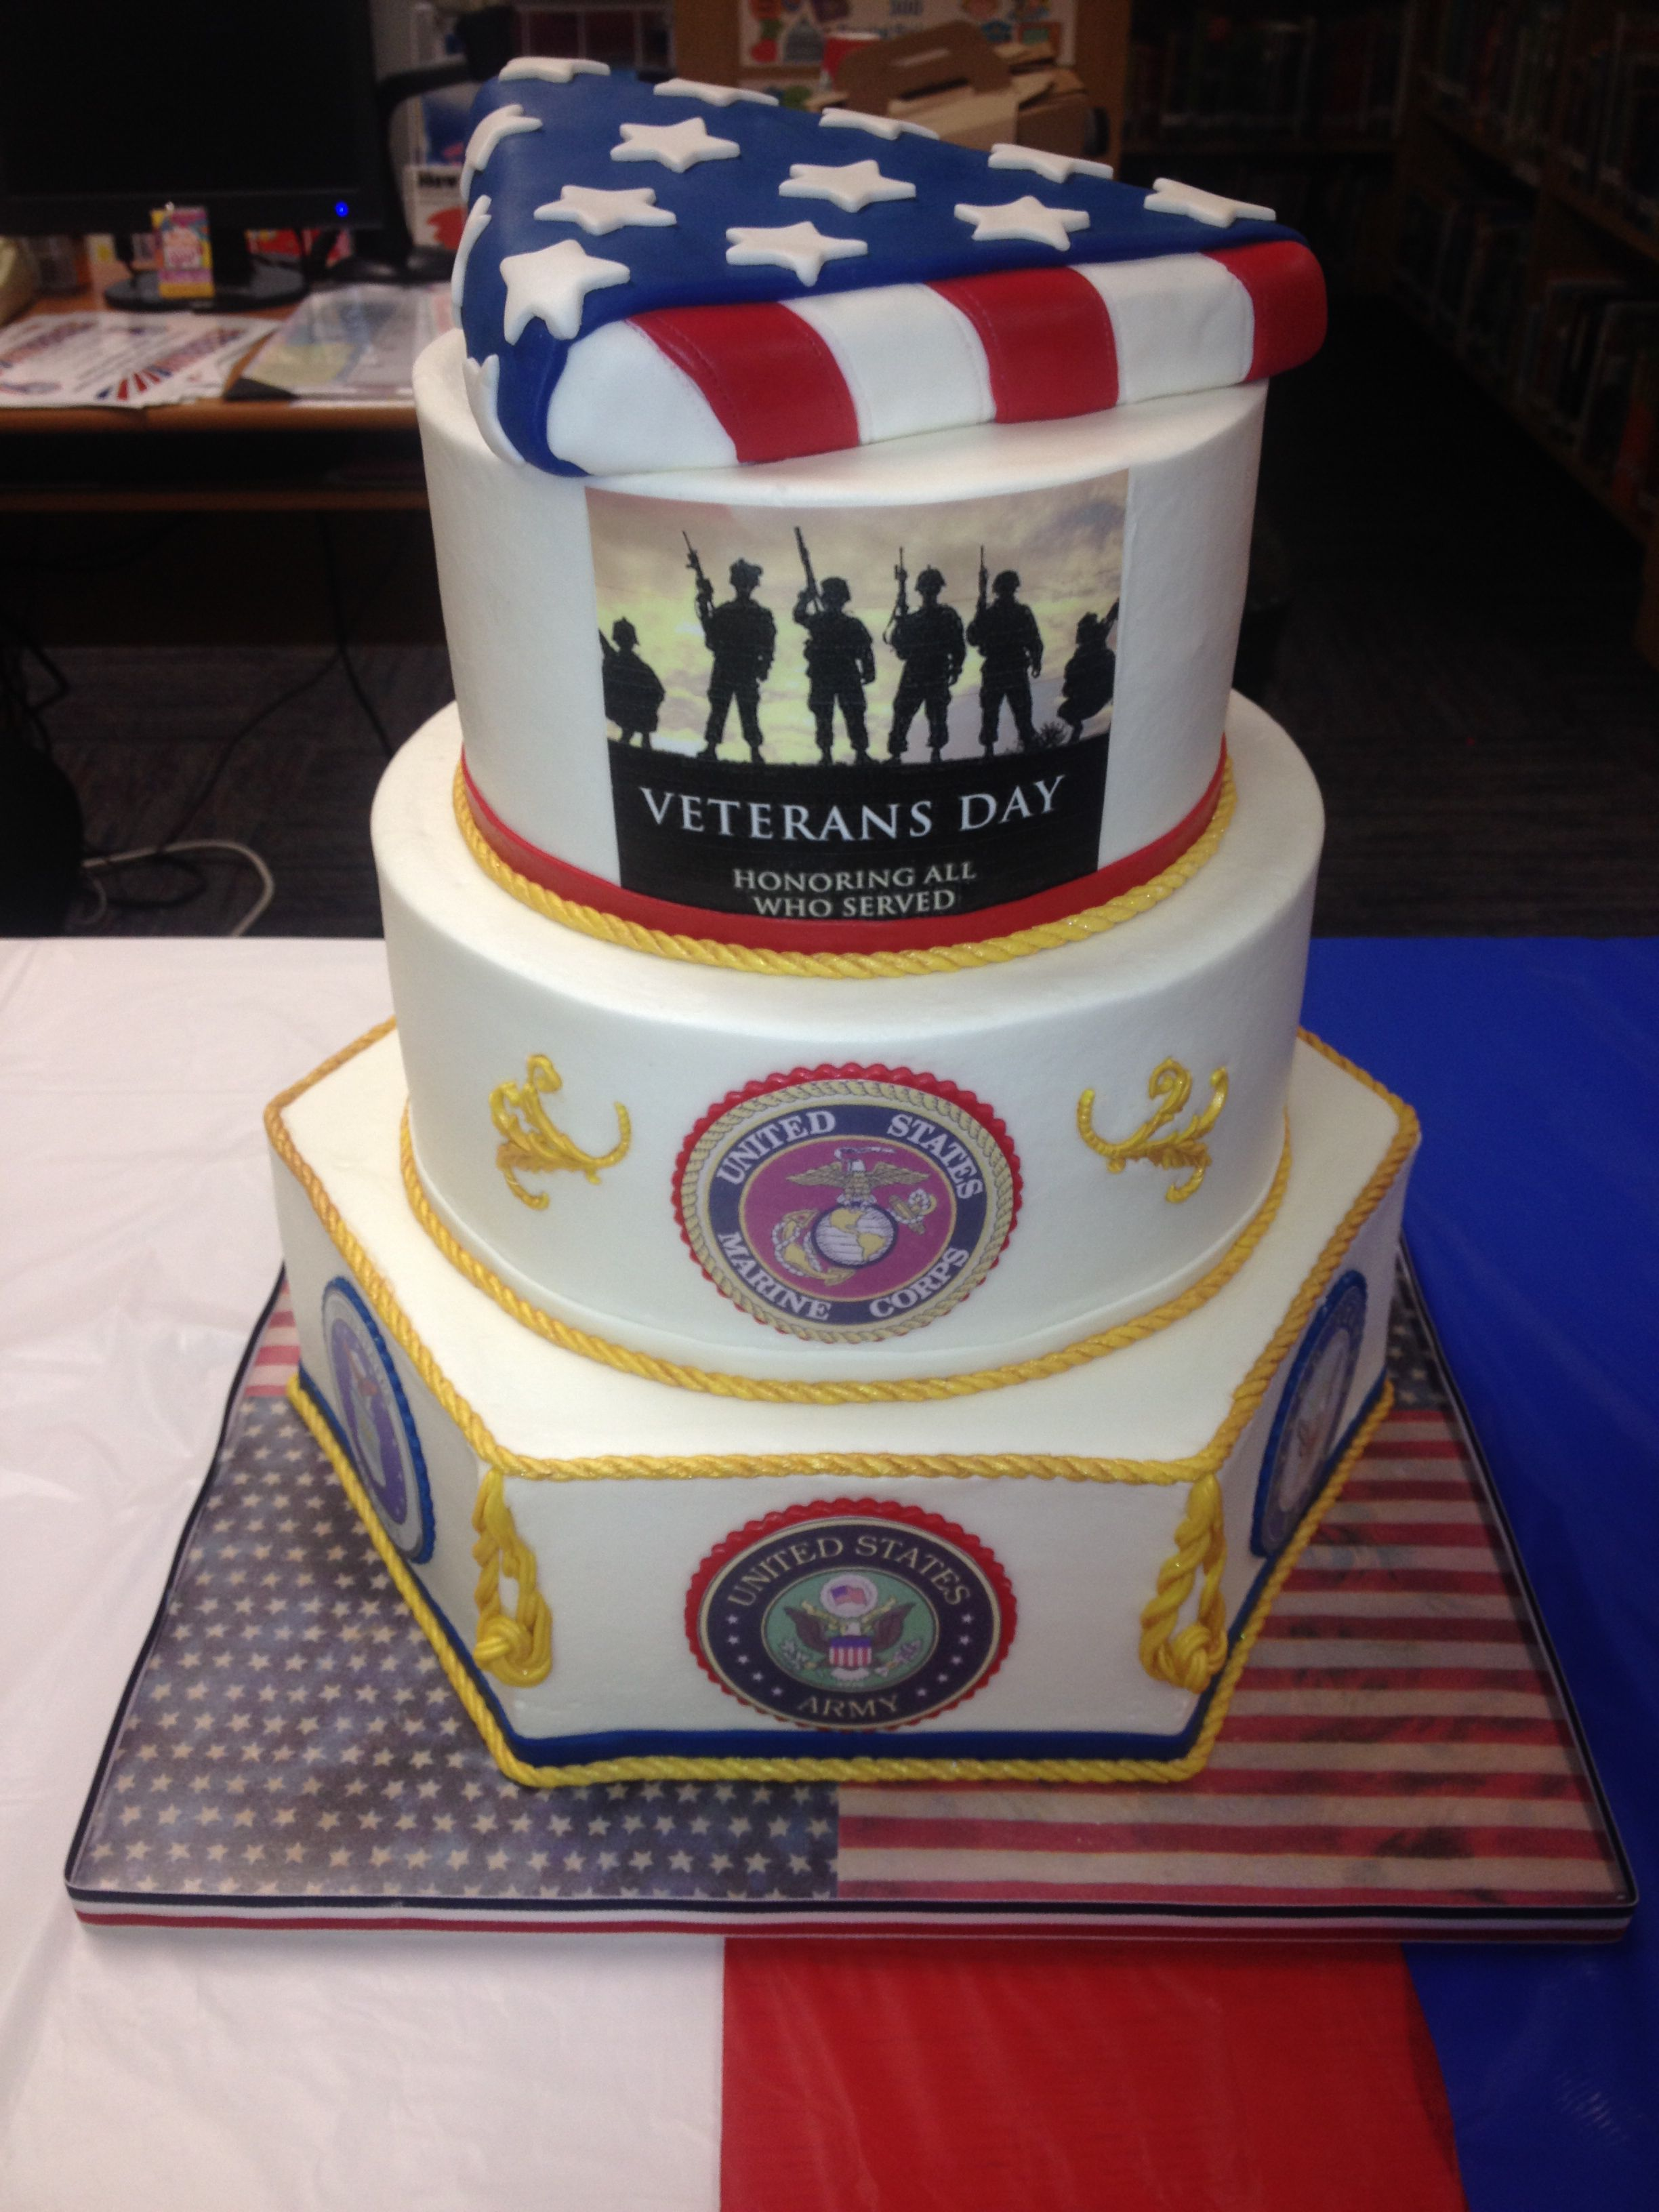 Veterans Day Cake With Images Military Cake Patriotic Cake